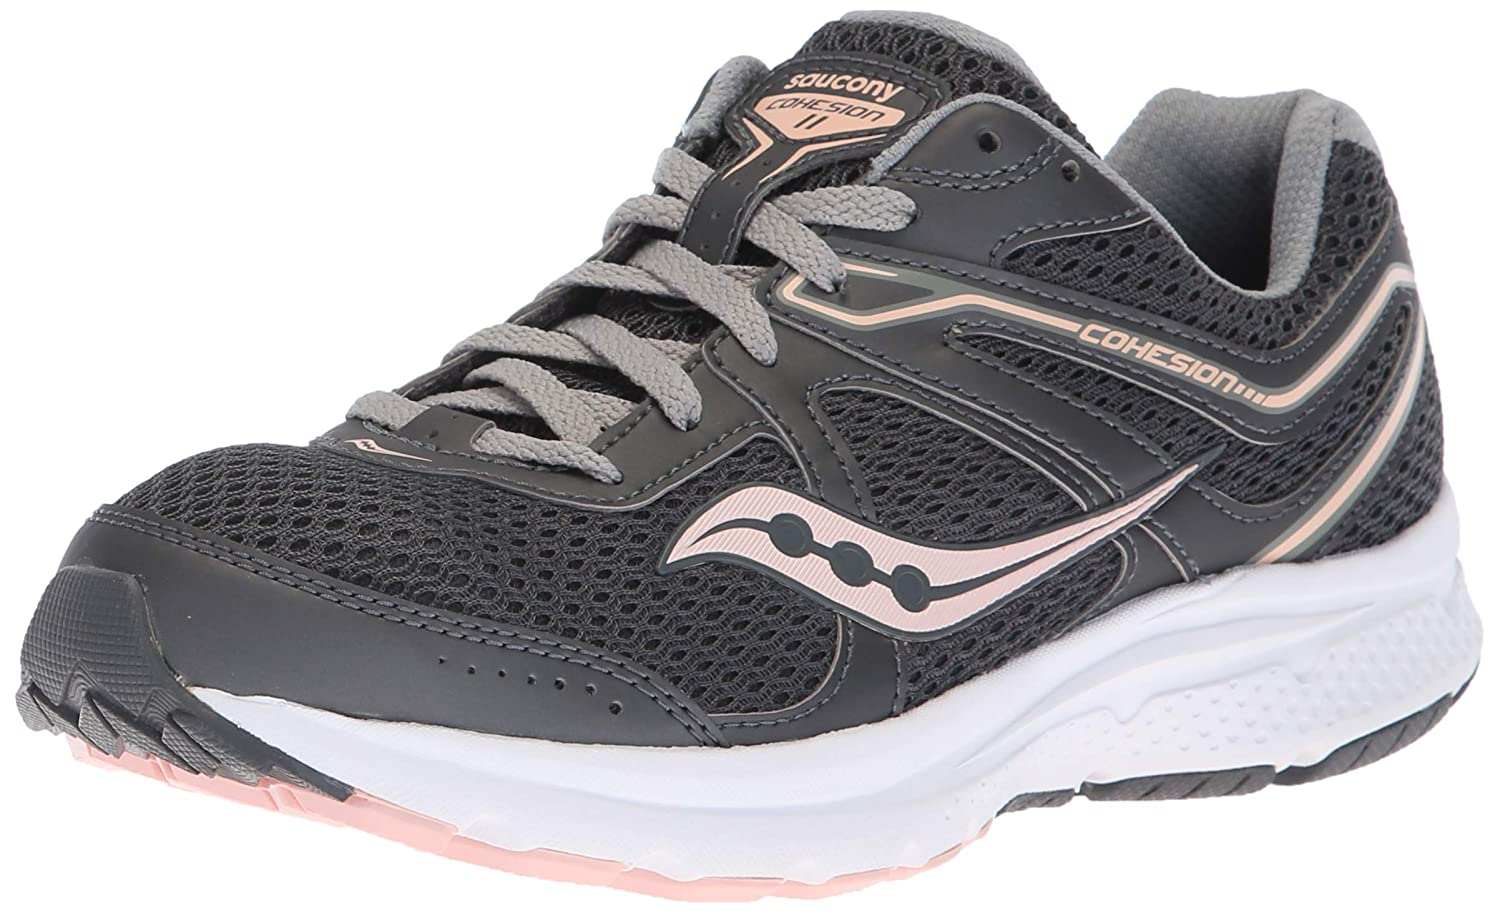 訳あり Saucony Women's Grid Cohesion 10.5 11 US Ankle-High M Mesh Running Shoe B077XZ2L4D Charcoal/ Peach 10.5 M US 10.5 M US|Charcoal/ Peach, エイブルマート:deb8351c --- a0267596.xsph.ru